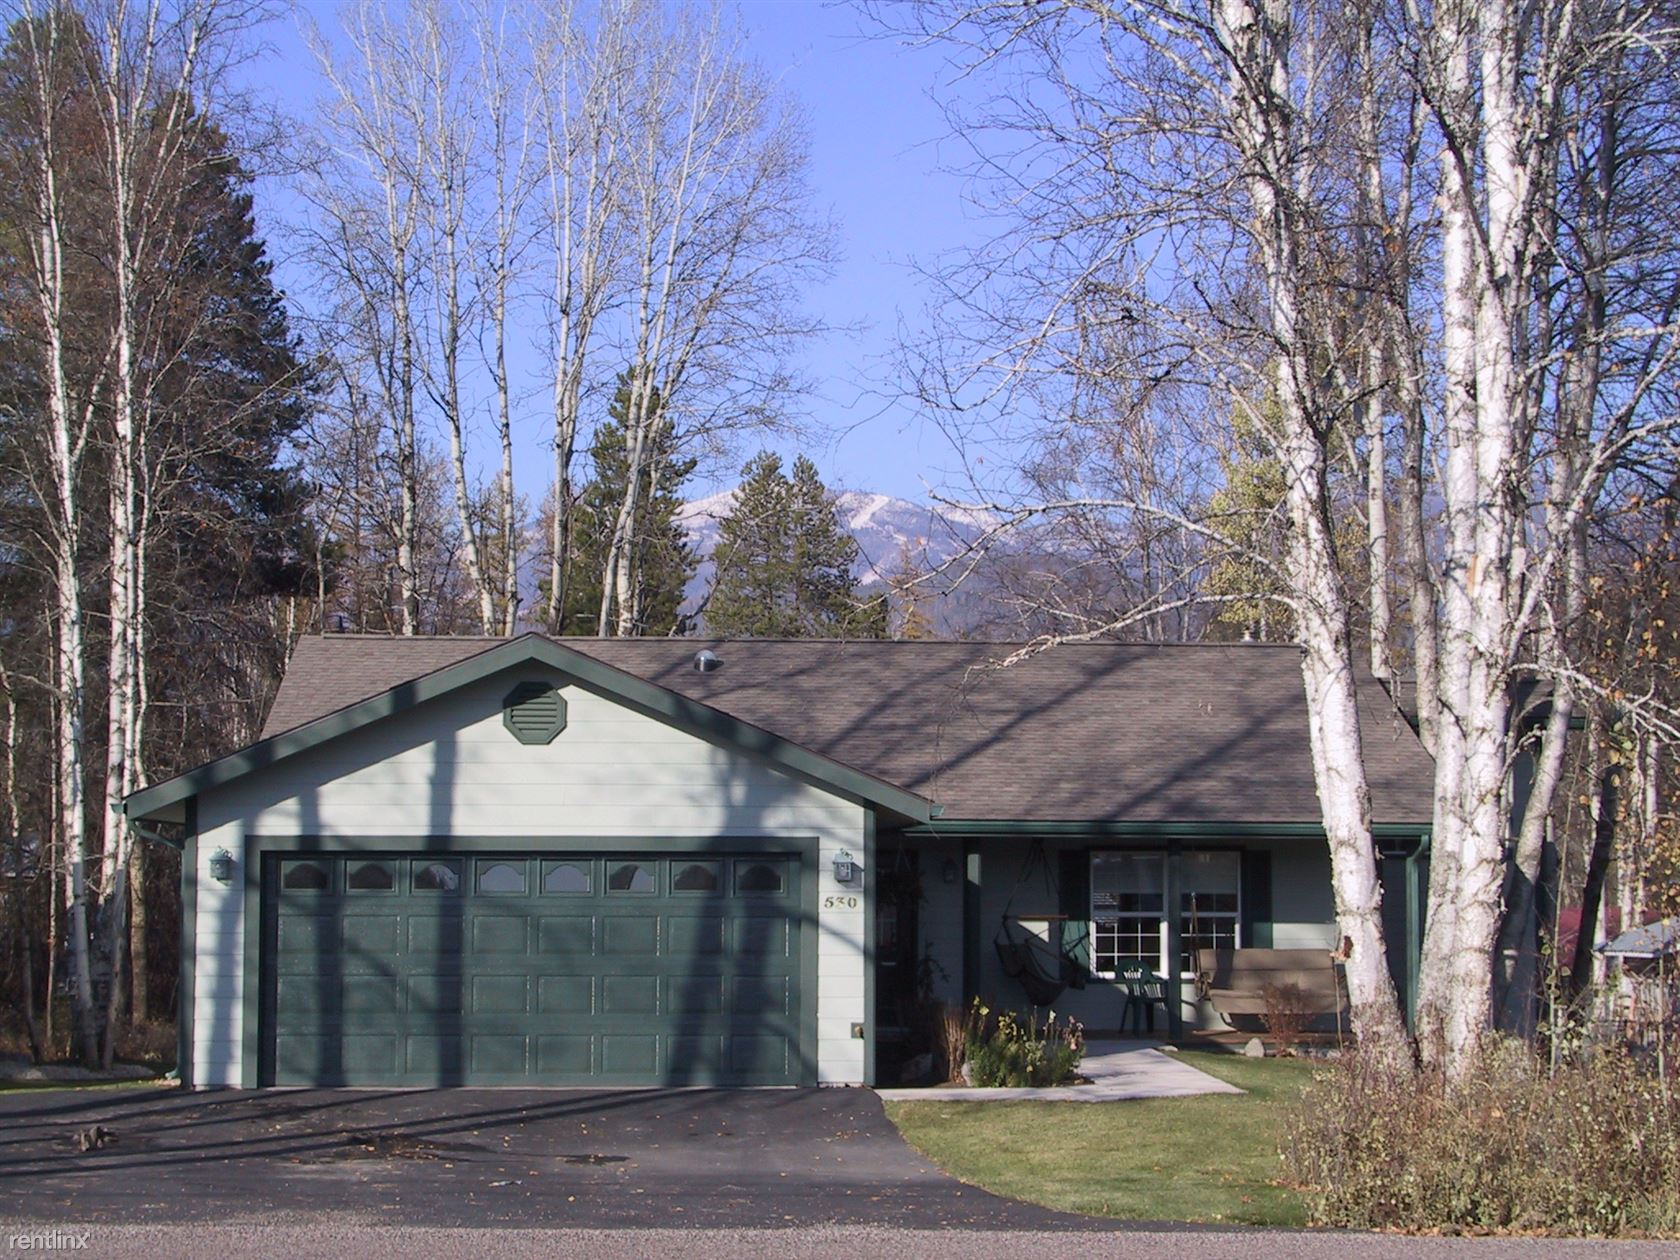 530 Glenwood Road, Whitefish, MT - $3,000 USD/ month